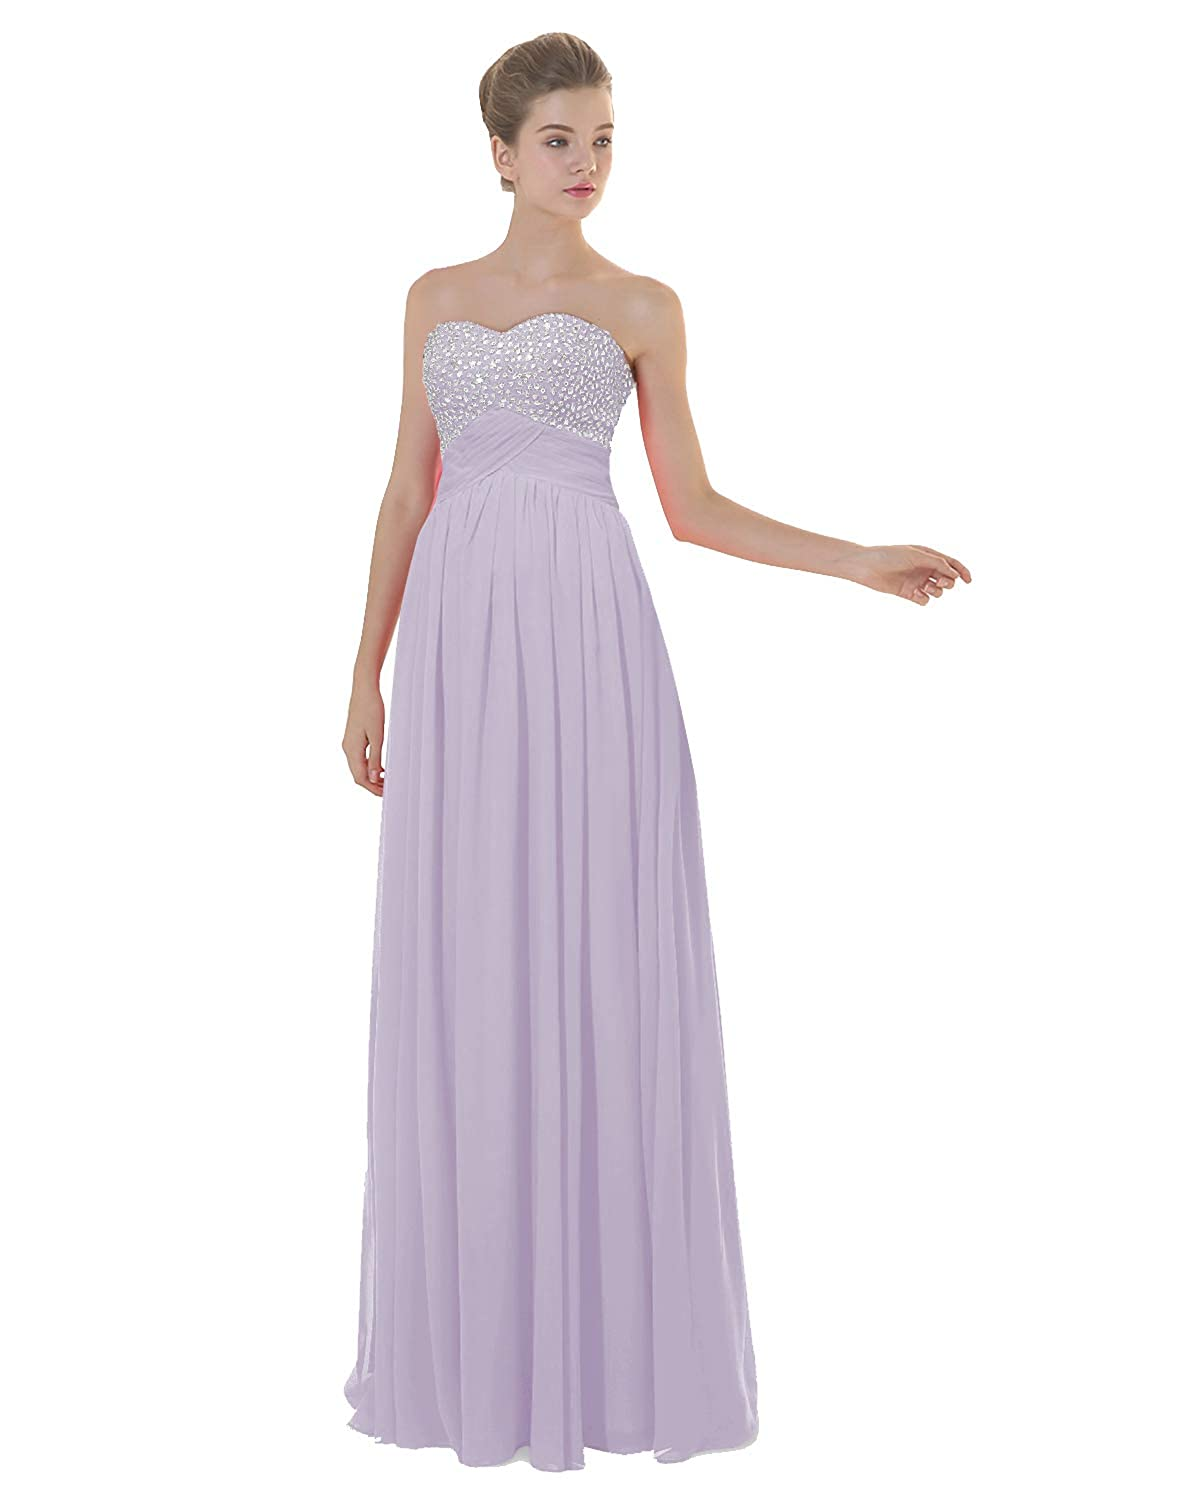 purplec ANGELWARDROBE Empire Beaded Sweetheart Neck Prom Gowns Long Evening Dresses Party Skirts